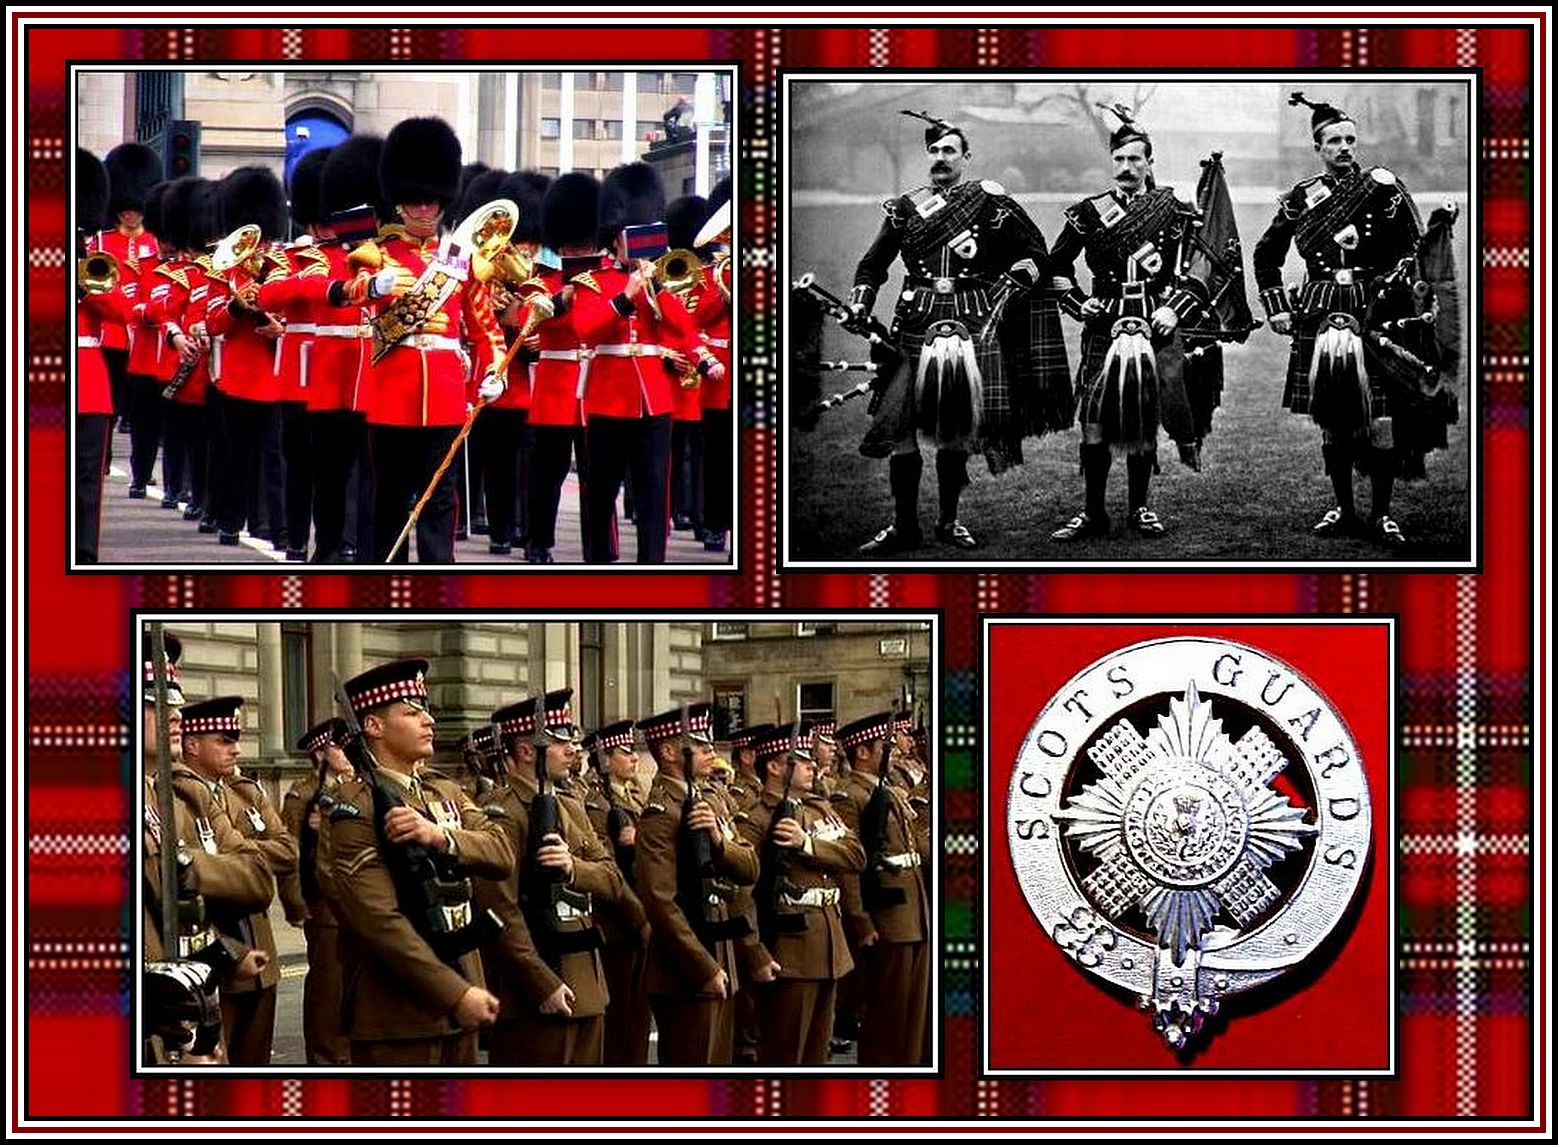 Scots Guards Collage